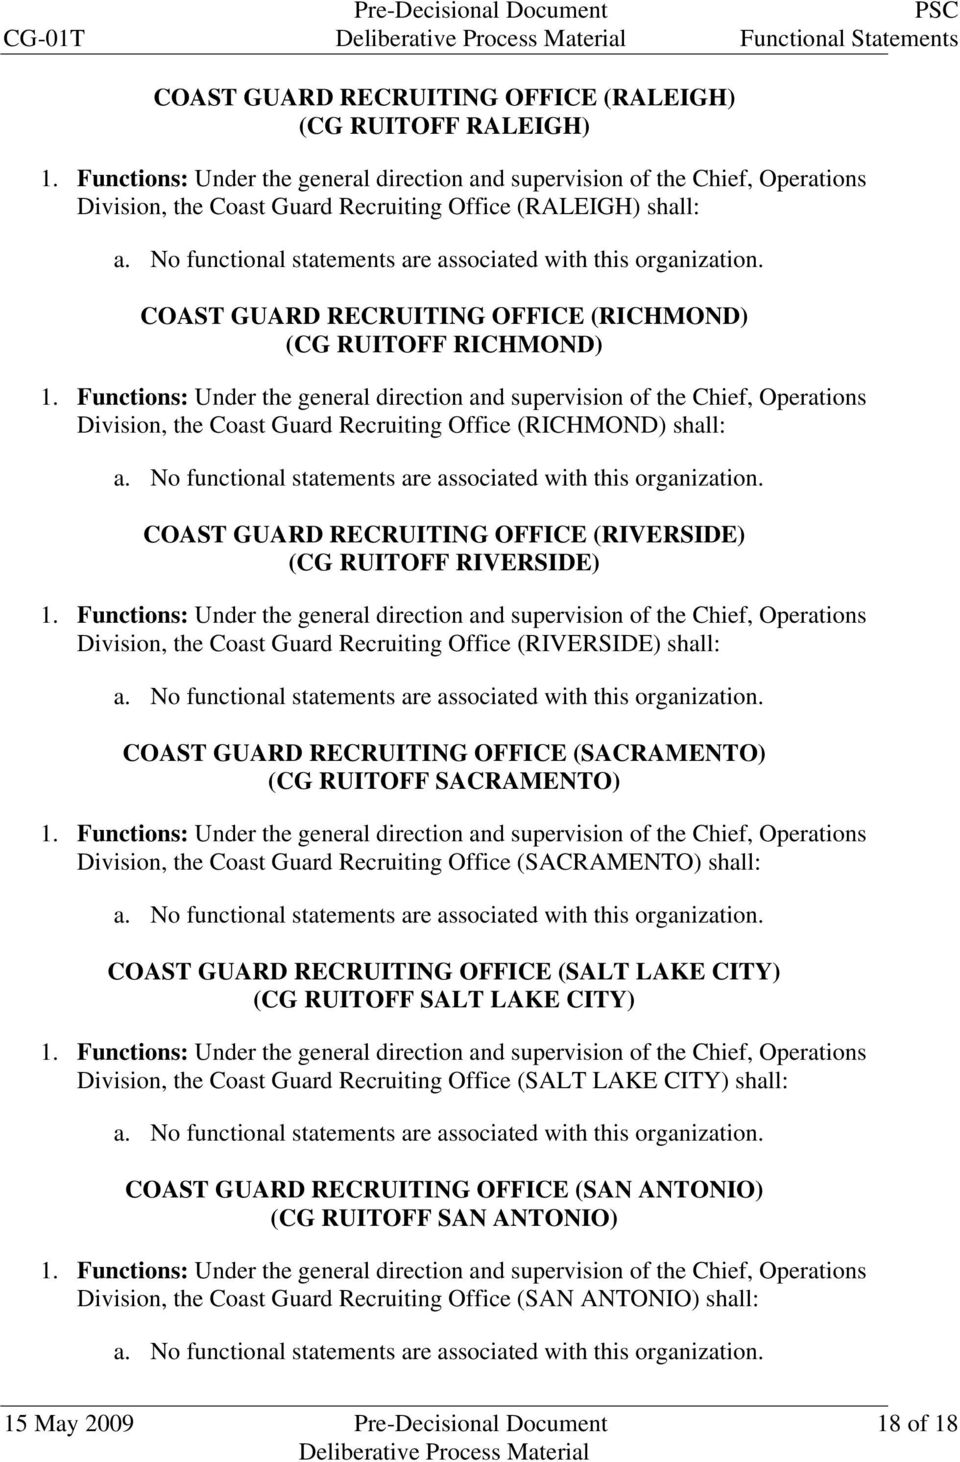 (RIVERSIDE) shall: COAST GUARD RECRUITING OFFICE (SACRAMENTO) (CG RUITOFF SACRAMENTO) Division, the Coast Guard Recruiting Office (SACRAMENTO) shall: COAST GUARD RECRUITING OFFICE (SALT LAKE CITY)